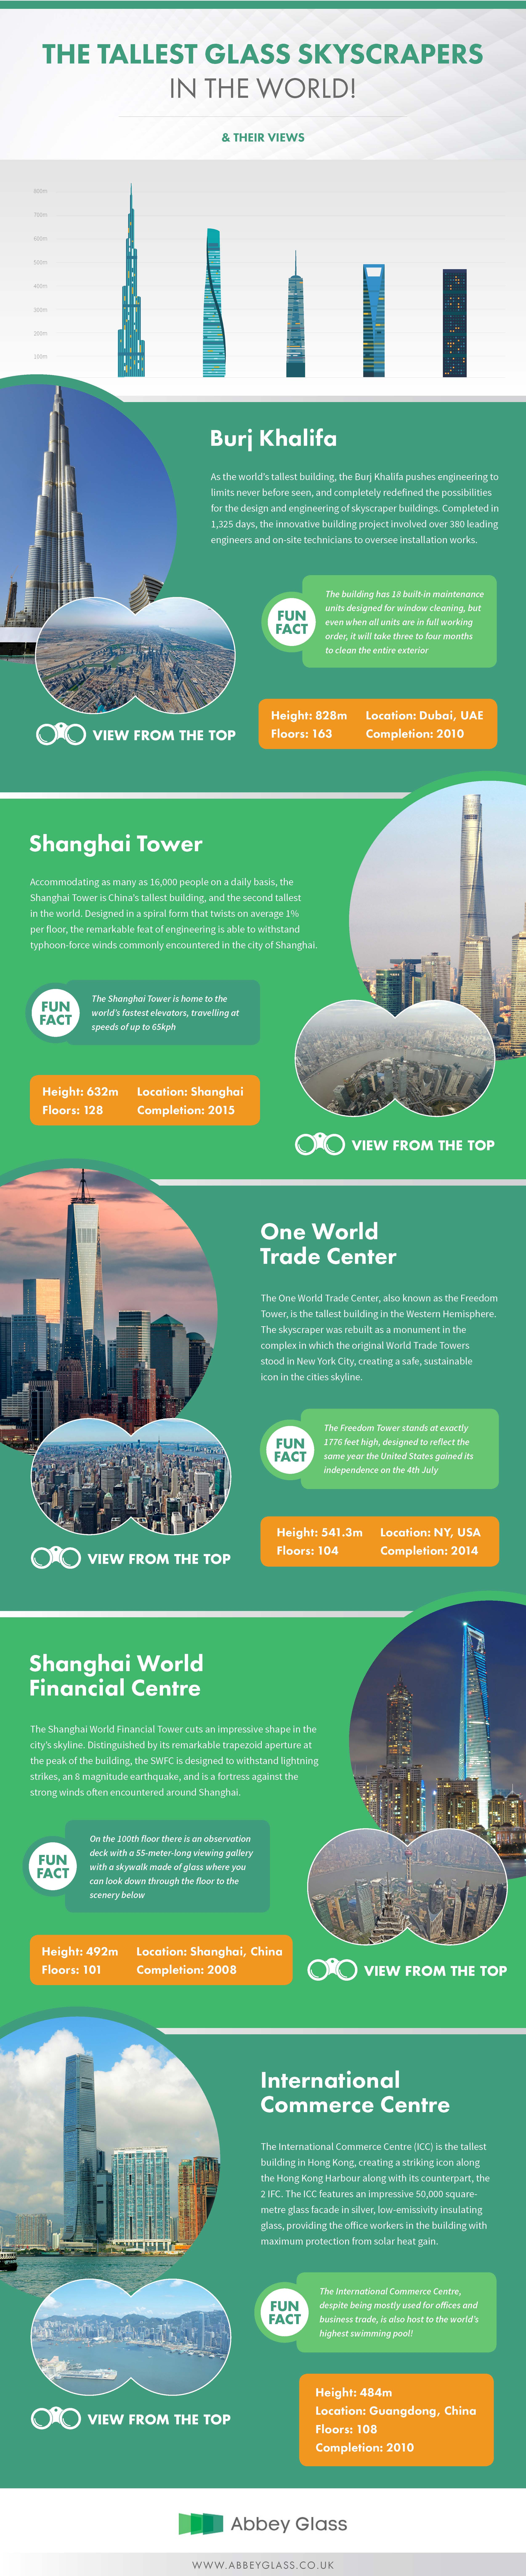 Tallest Glass Skyscrapers Infographic